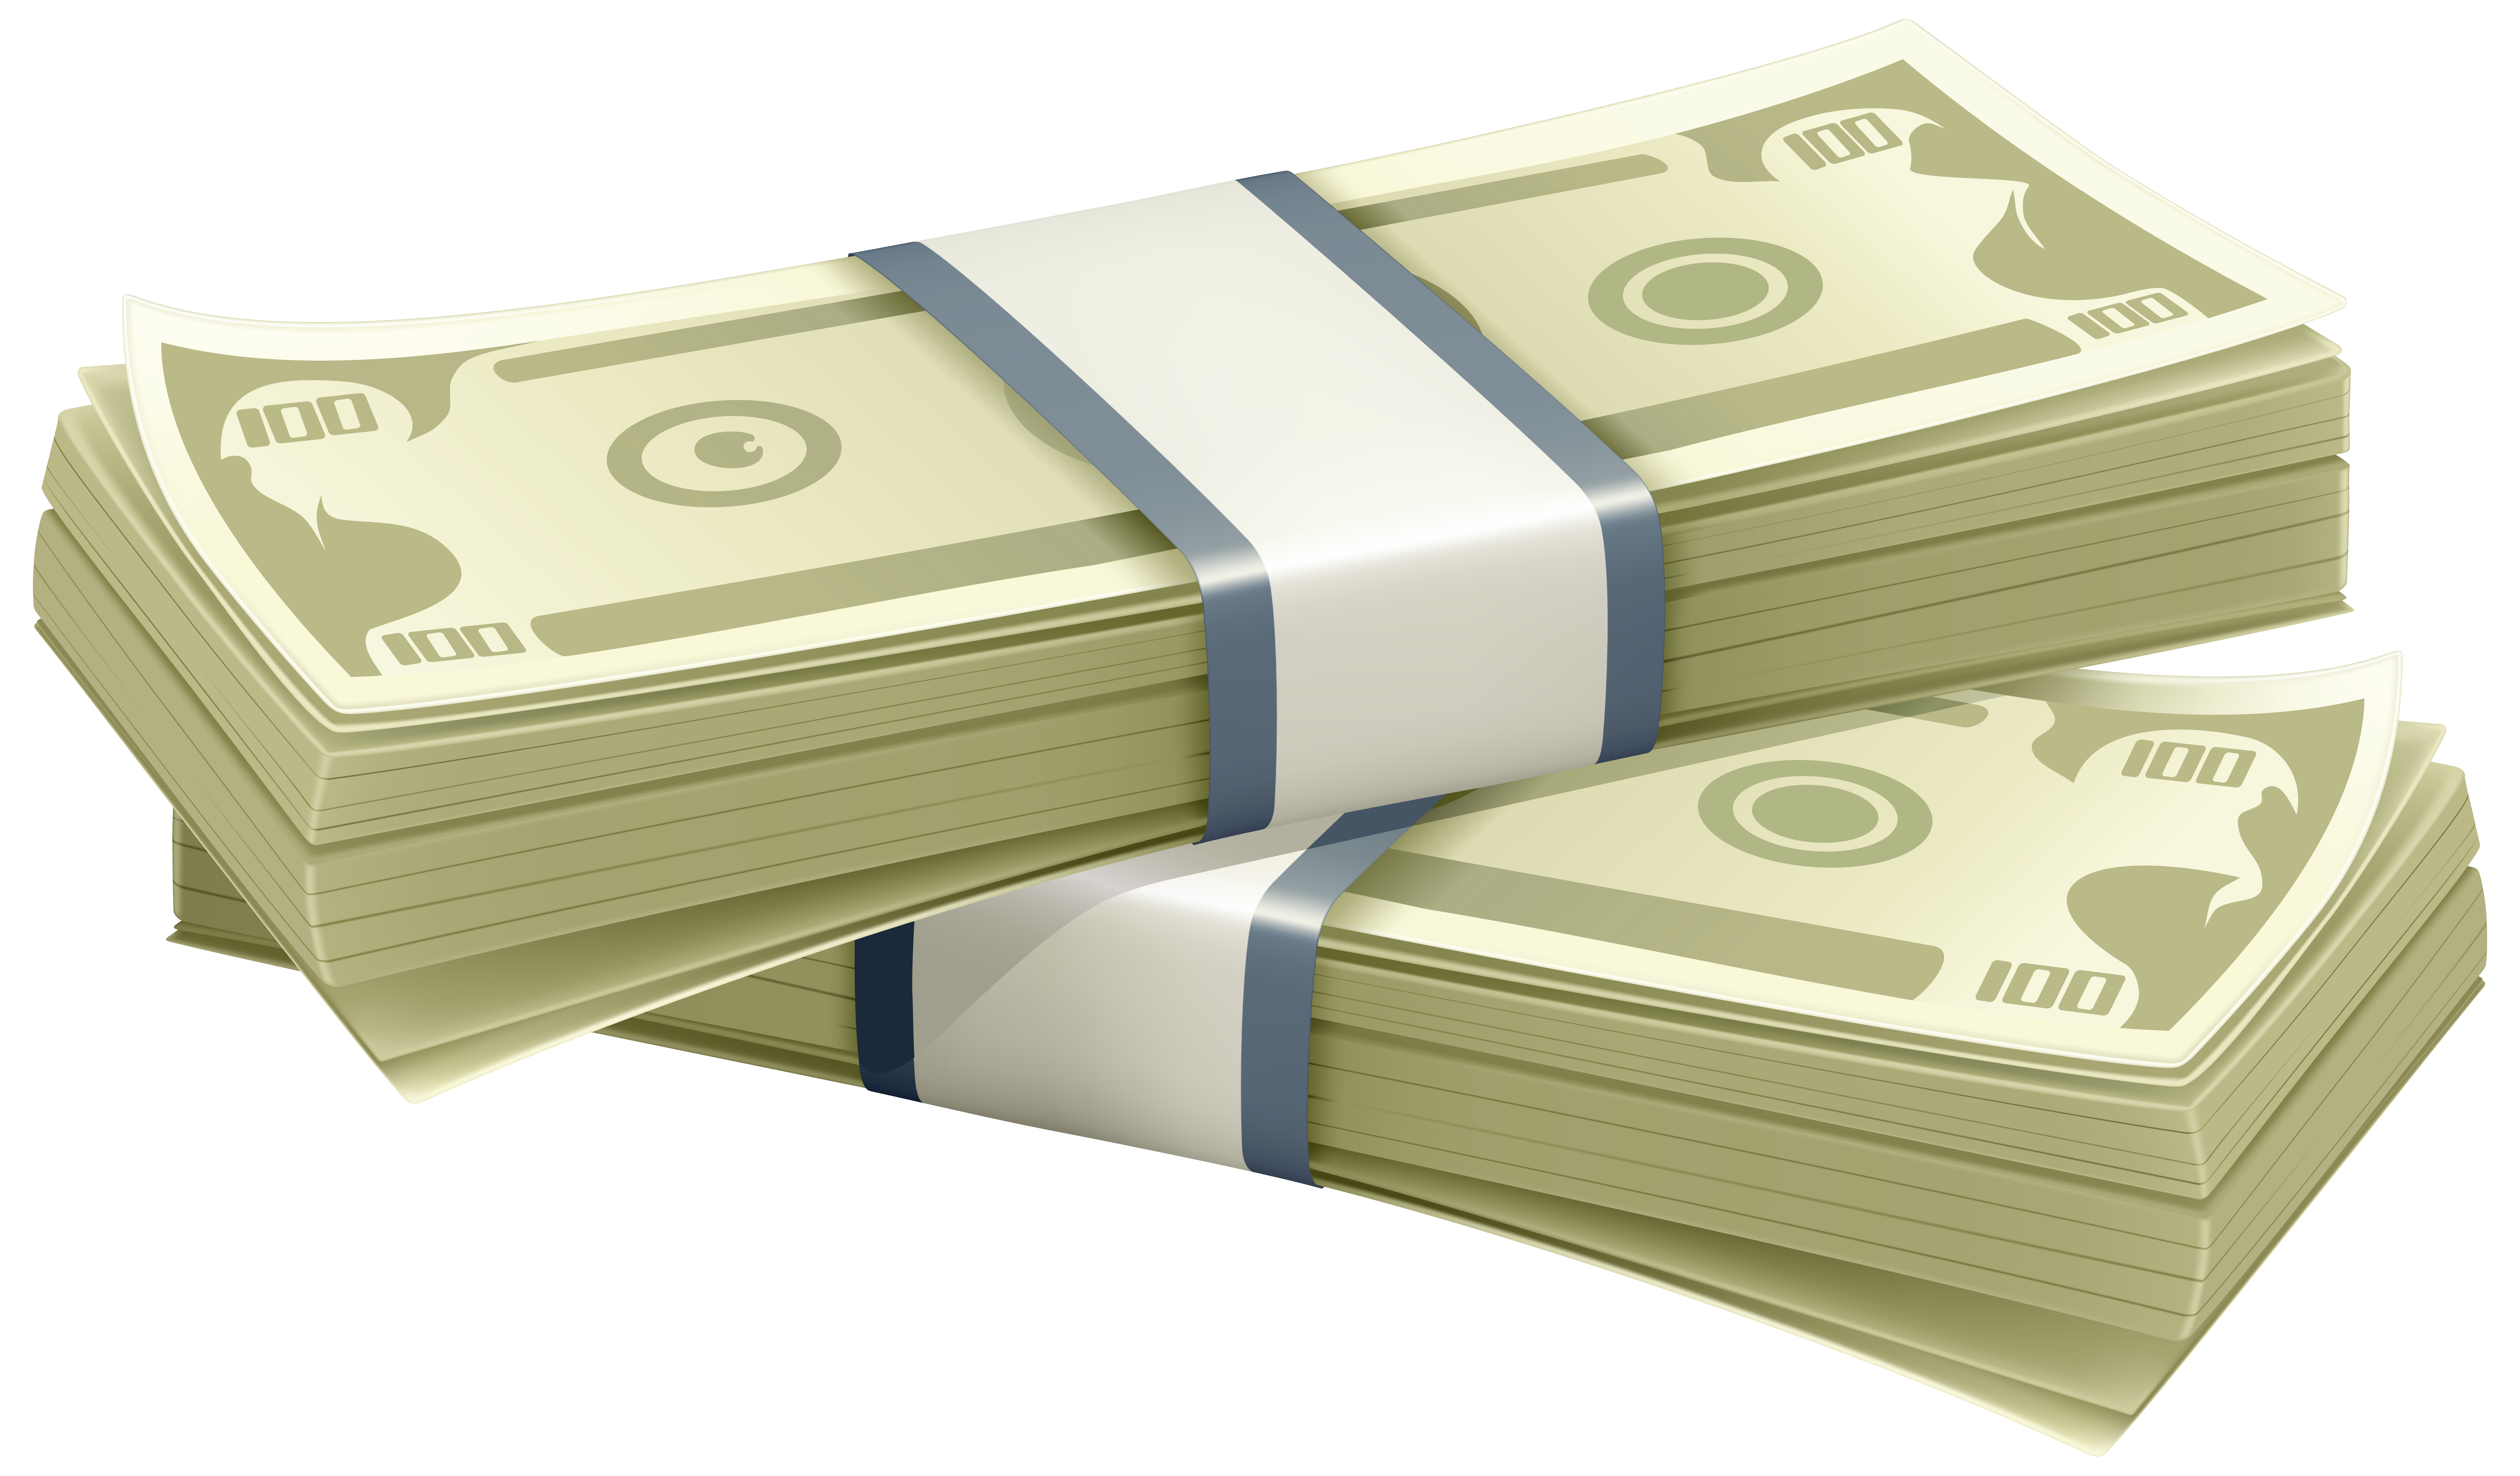 Wad of money clipart graphic free library Money Currency Royalty-free - Wads of Money Transparent PNG ... graphic free library